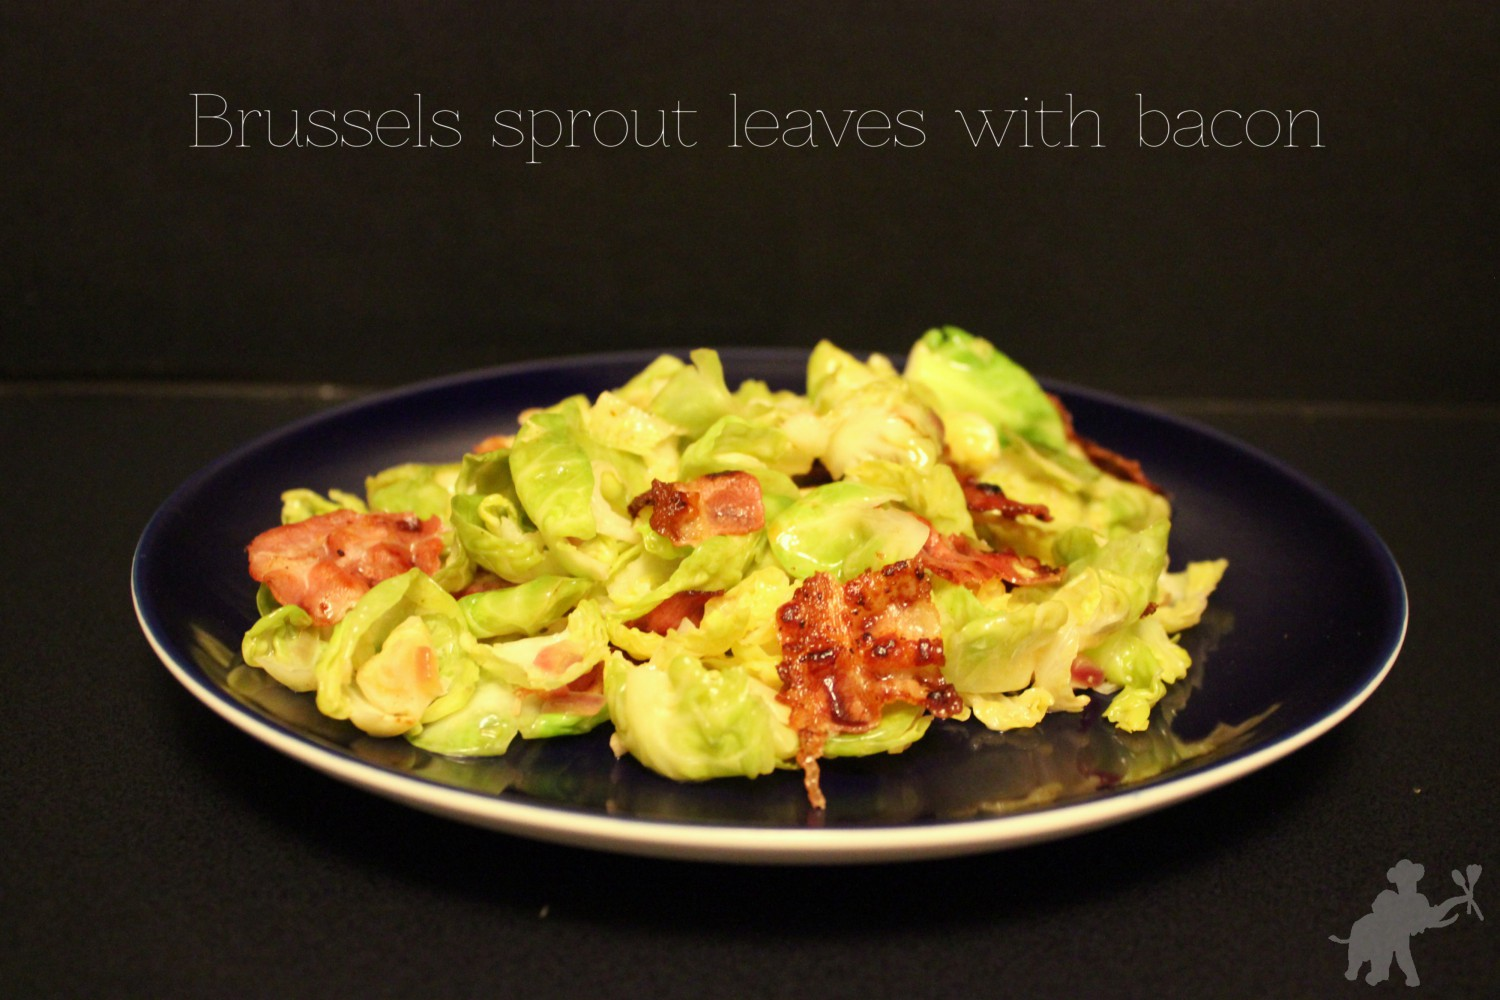 Brussels sprouts leaves with bacon 1